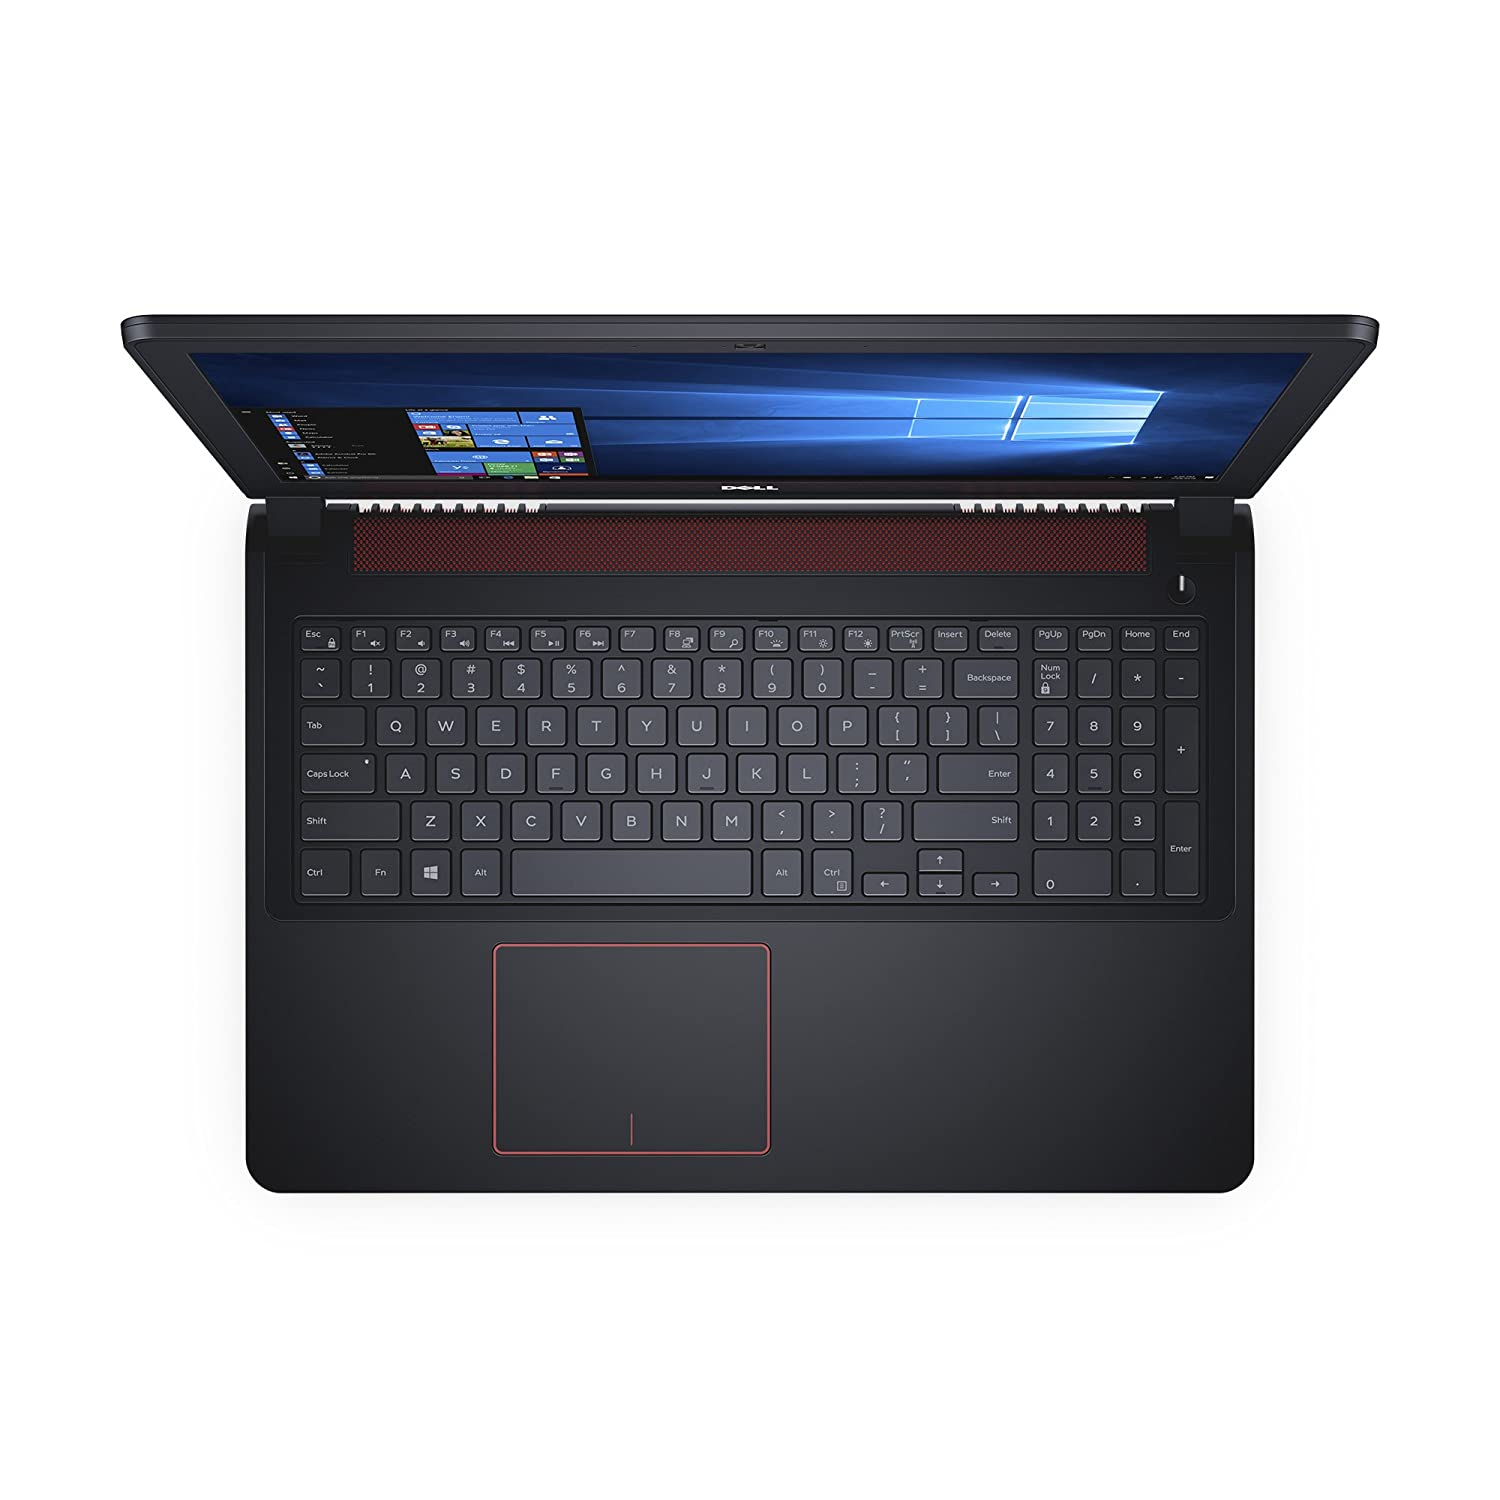 Dell Inspiron i5577-7342BLK-PUS 15.6 inch Gaming Laptop